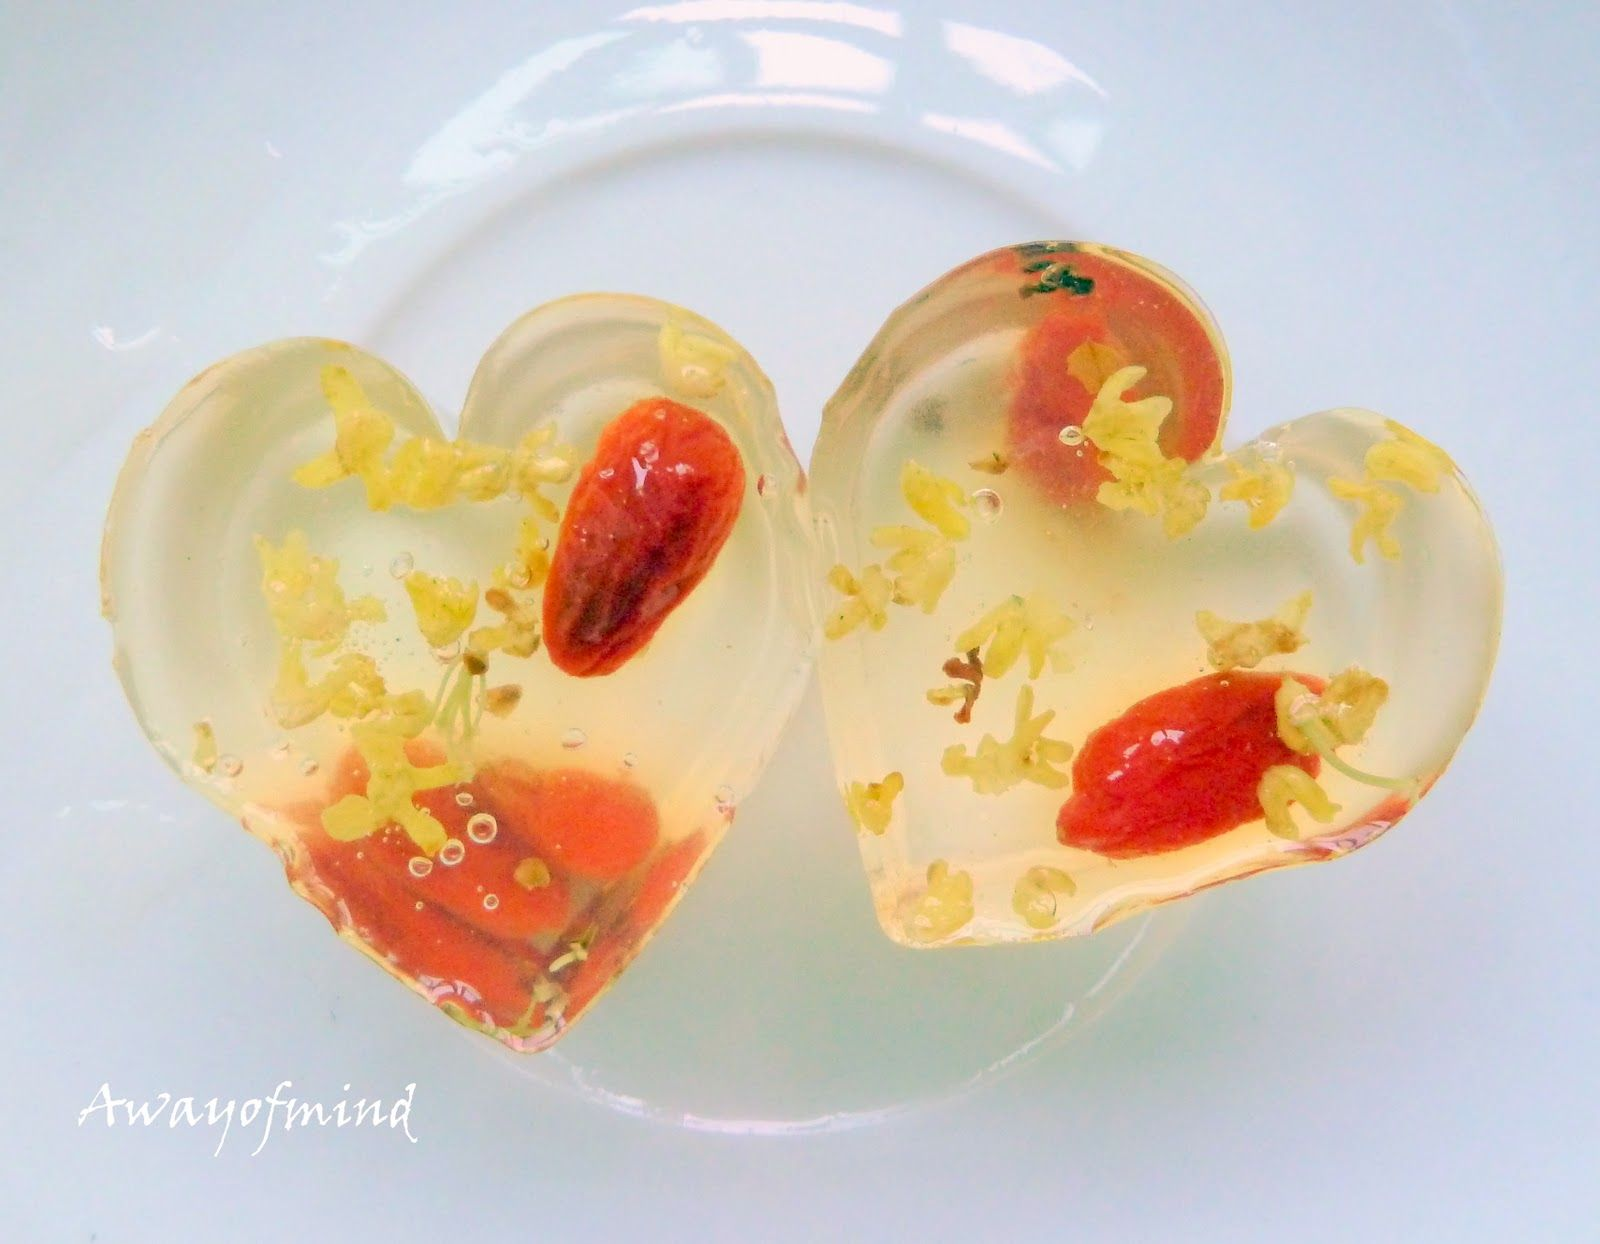 Awayofmind bakery house osmanthus jelly jellies for Asian cuisine desserts